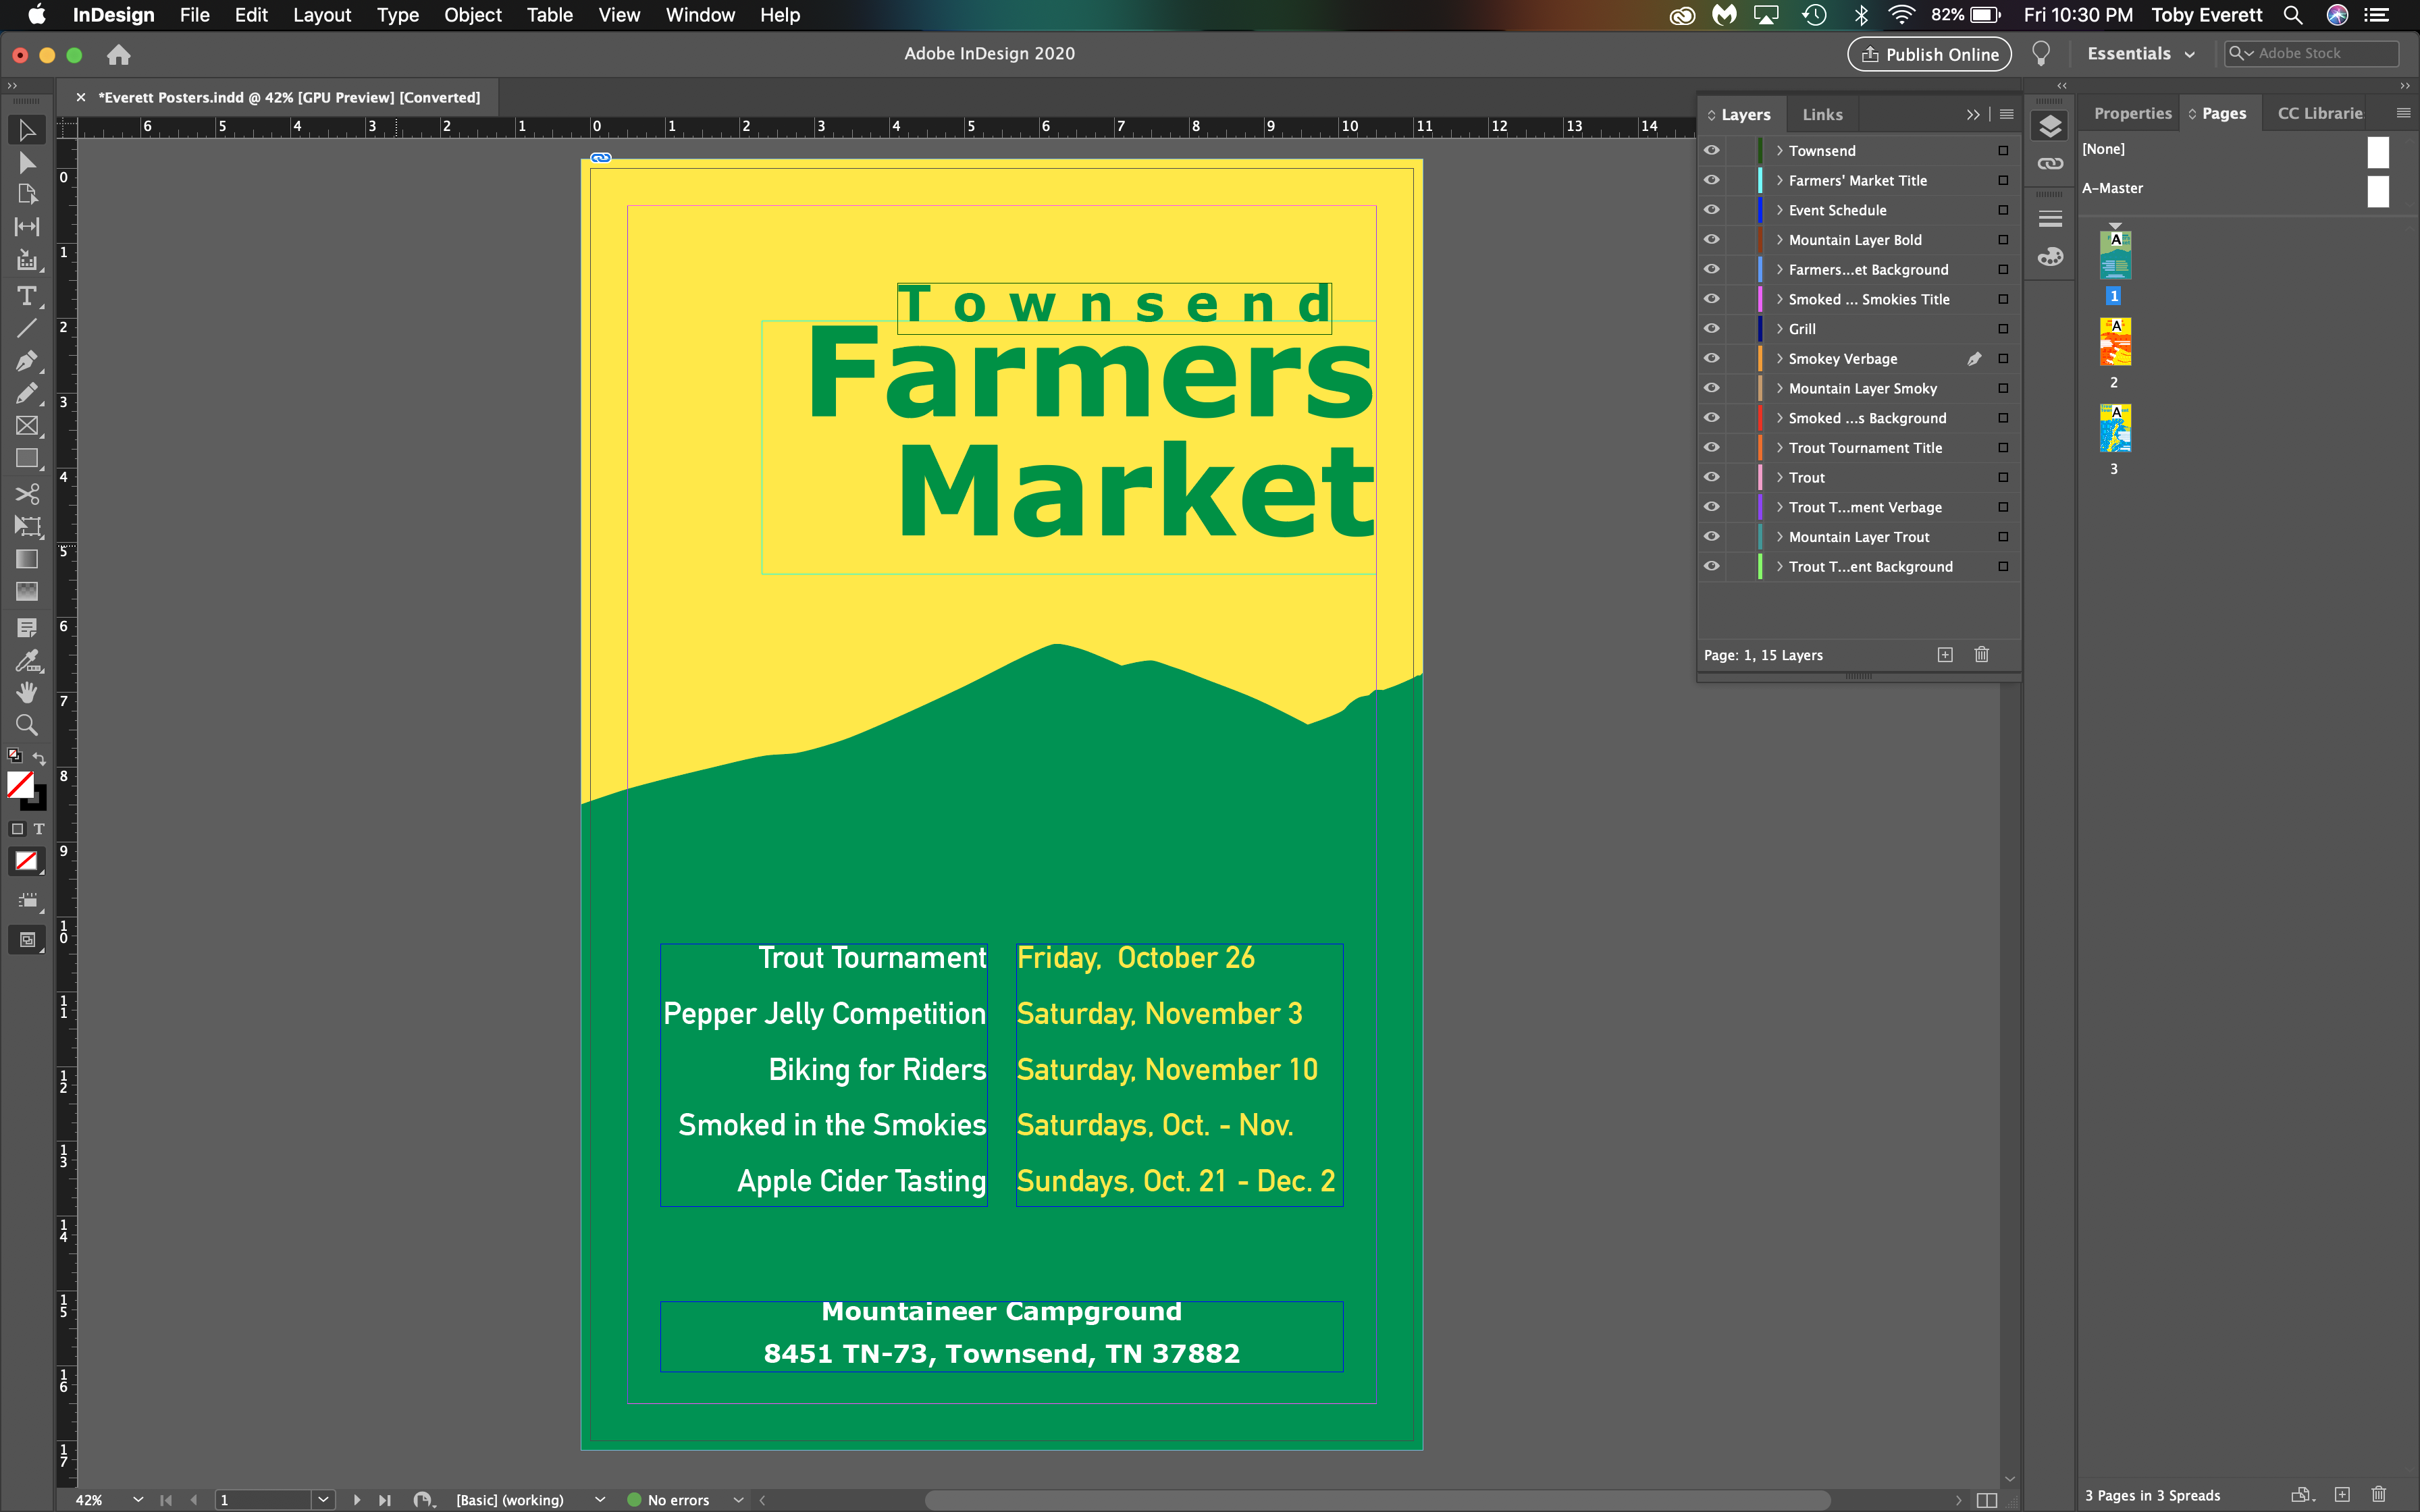 Townsend Farmers Market Poster InDesign | Toby Everett